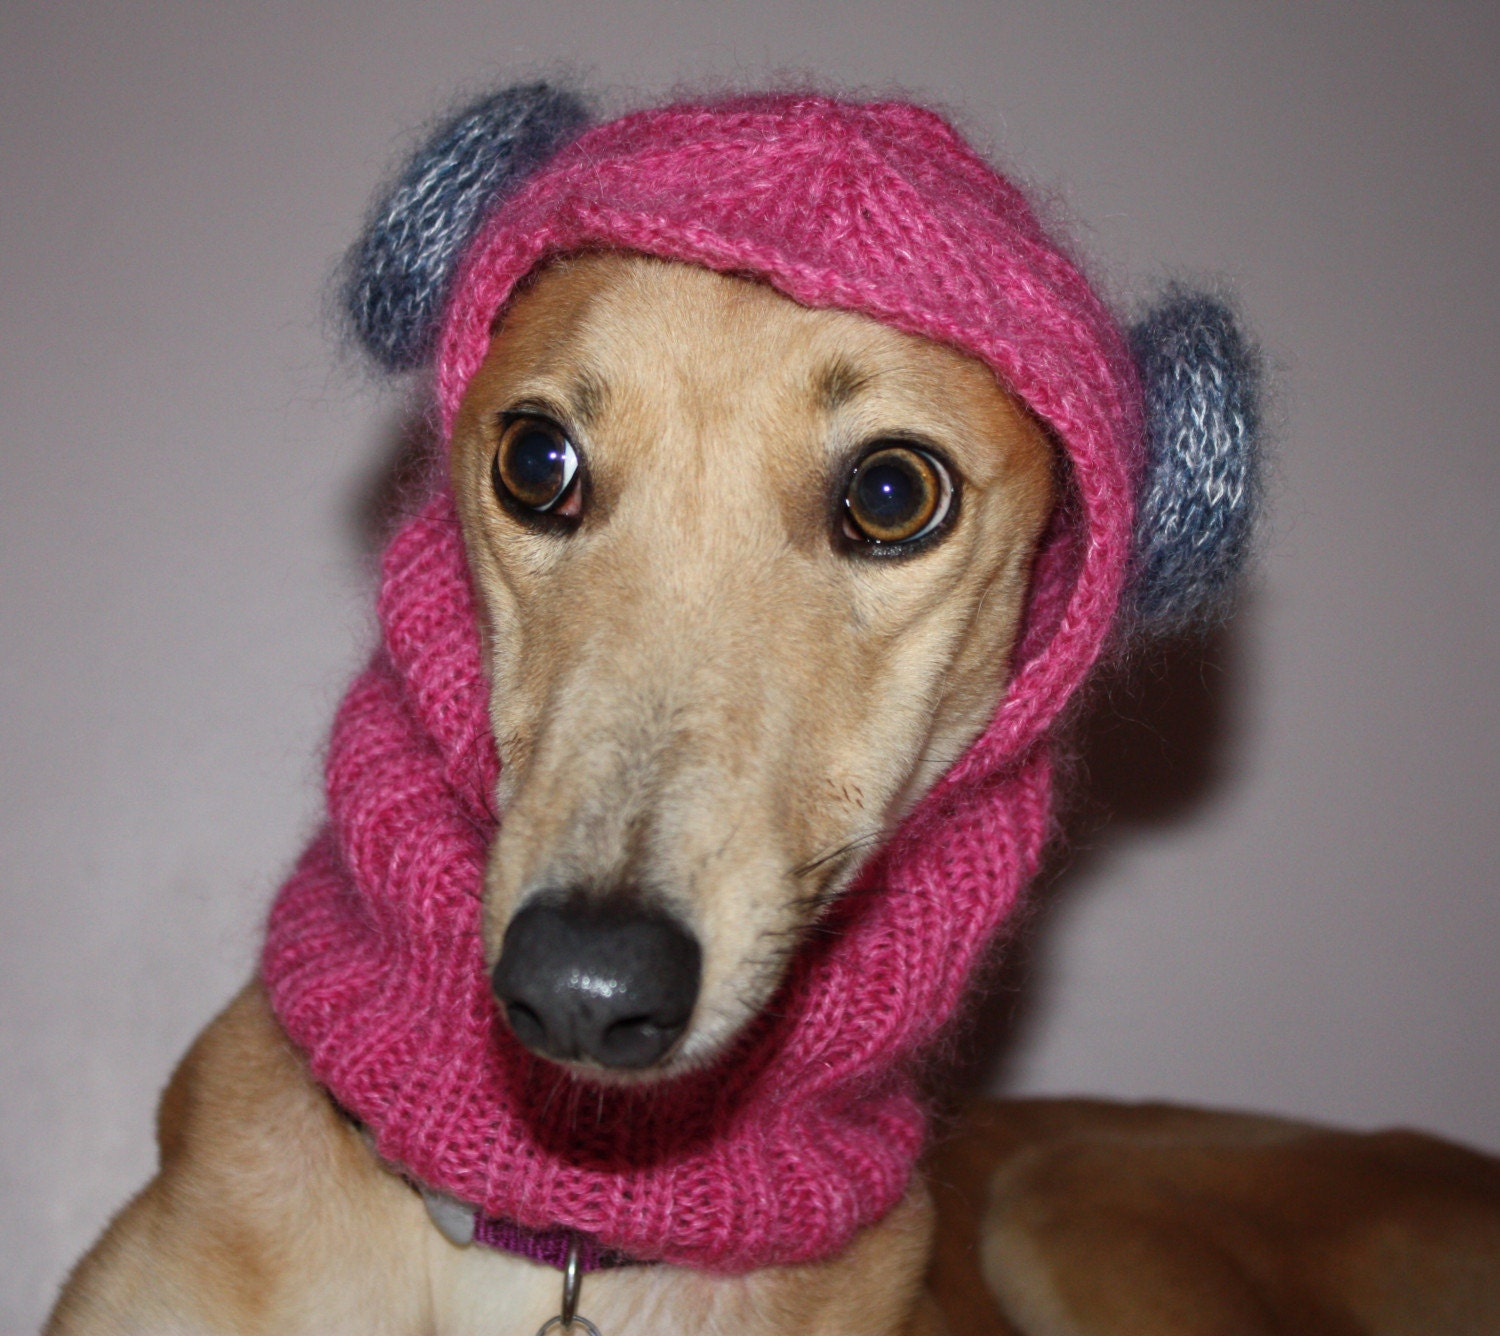 Doggy Balaclava by GemsK on Etsy Craftjuice Handmade Social Network